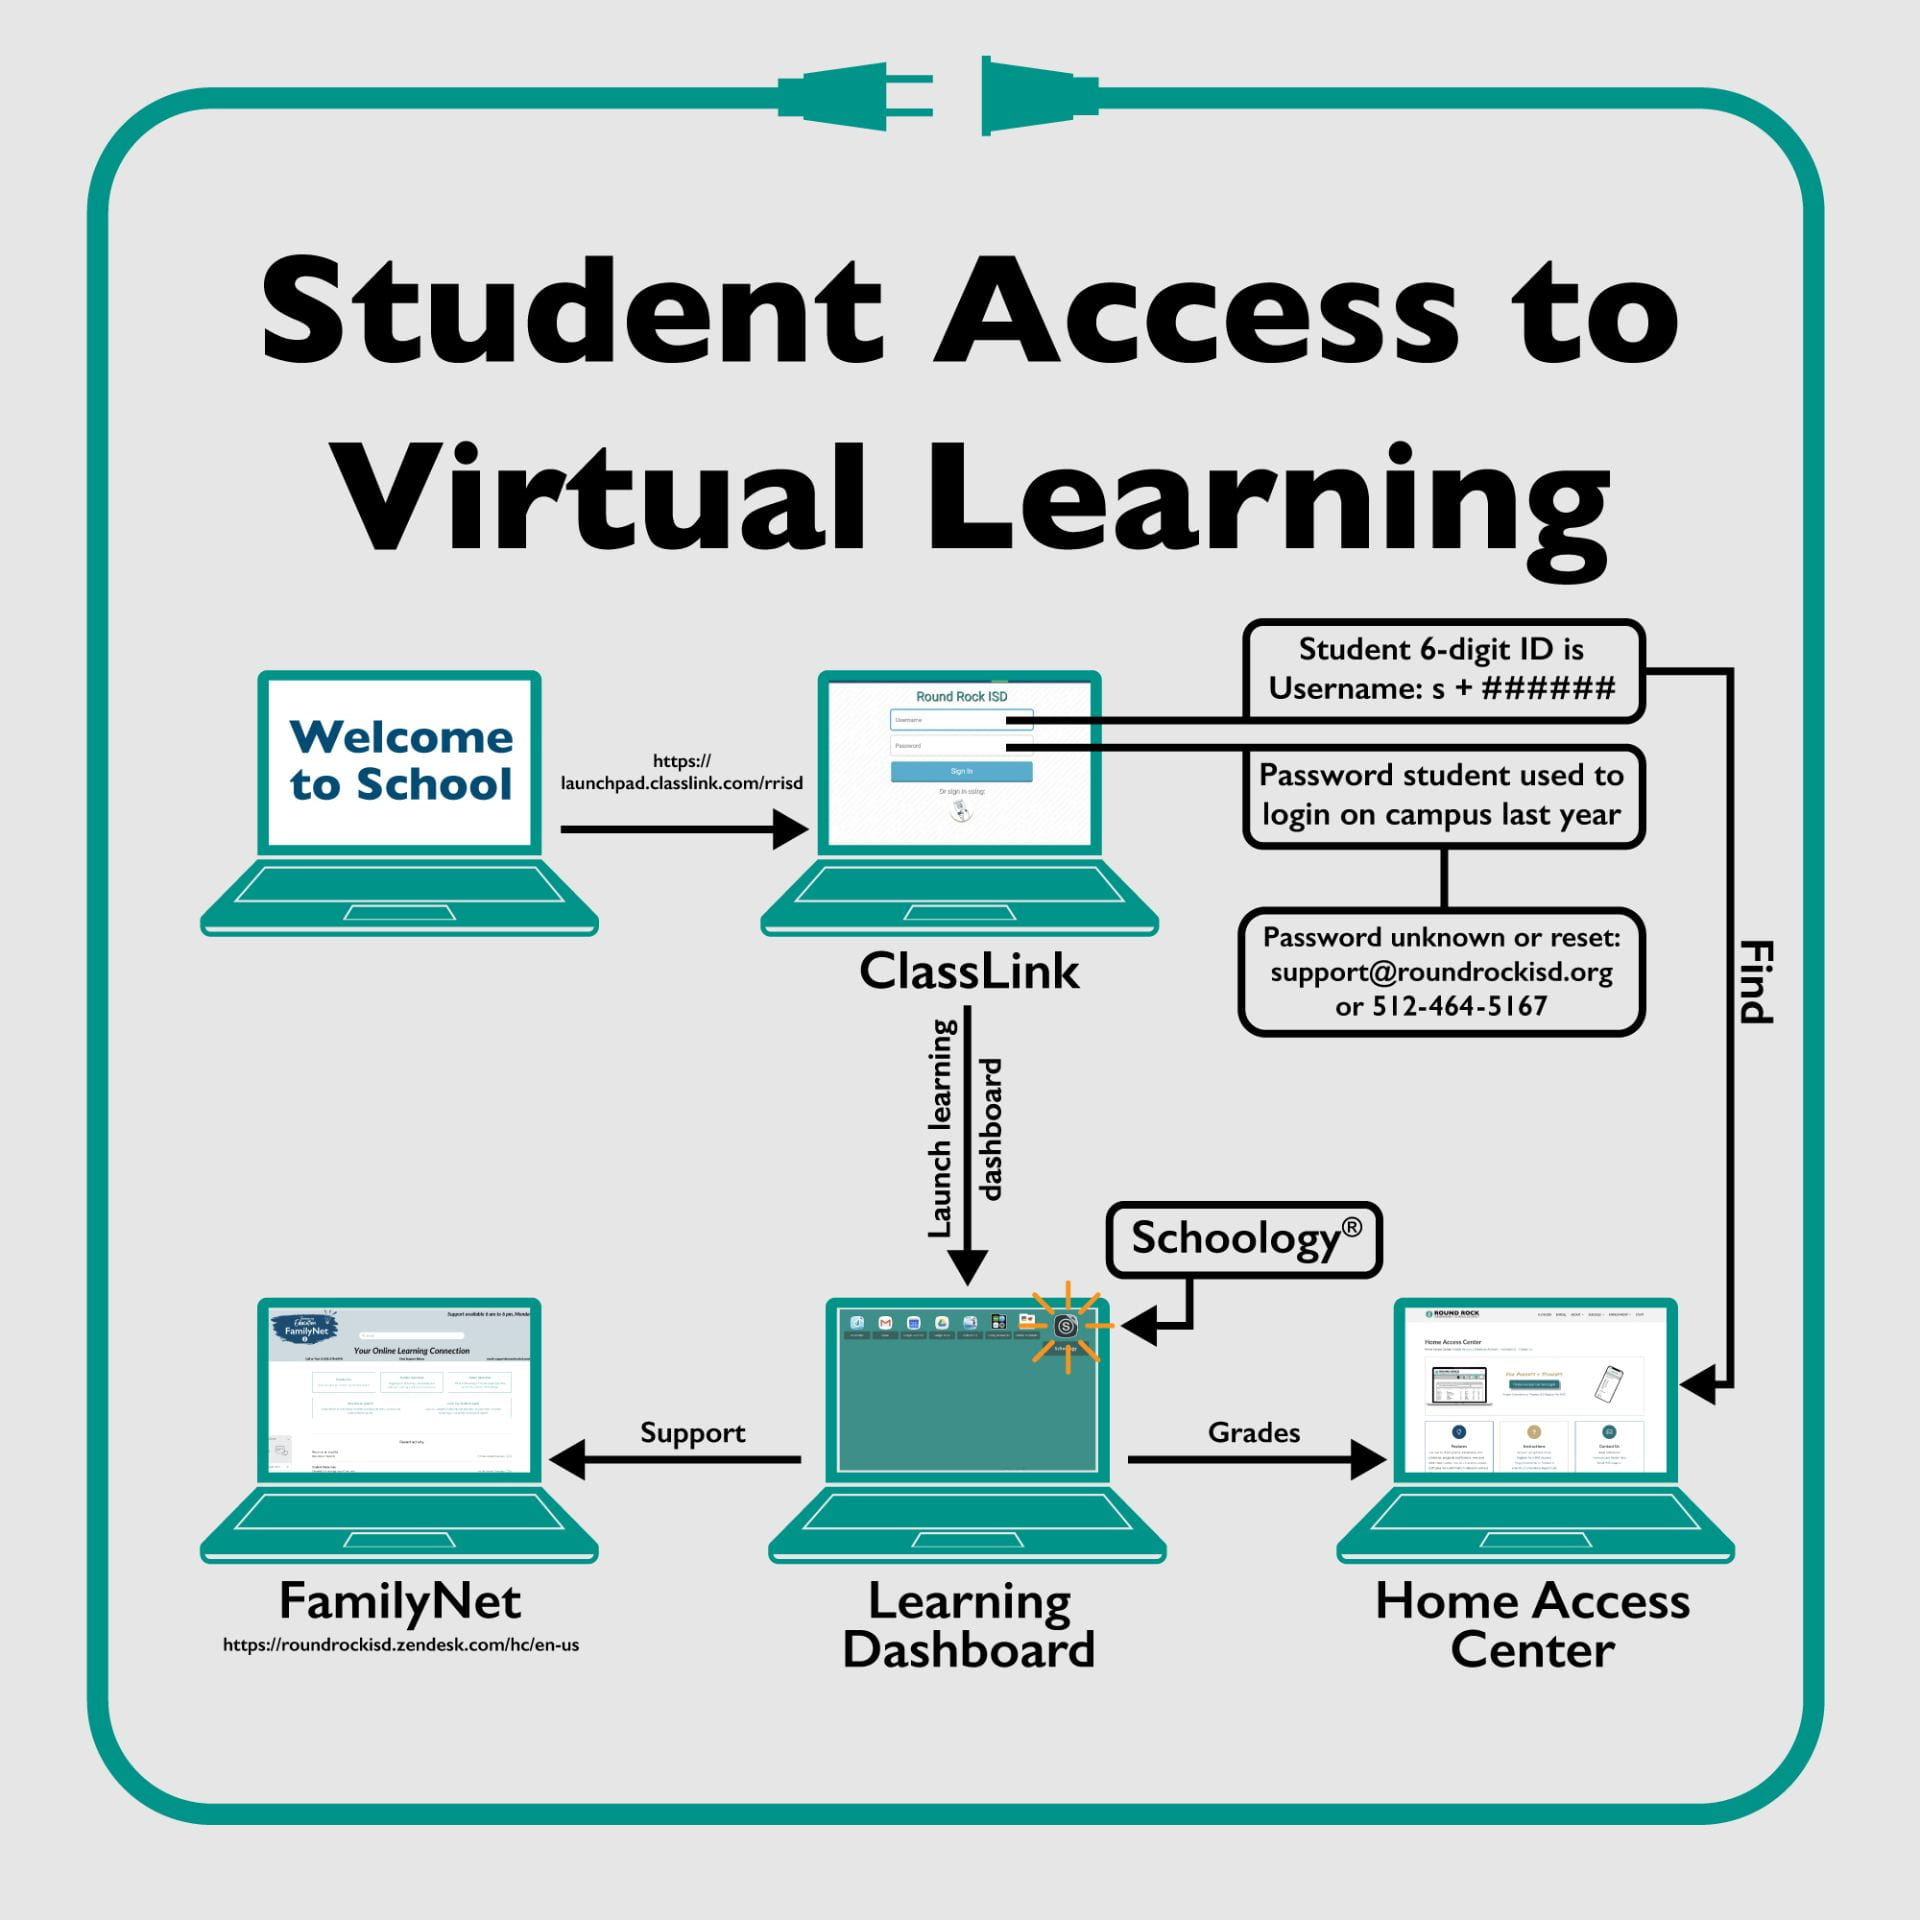 Student Access to Virtual Learning